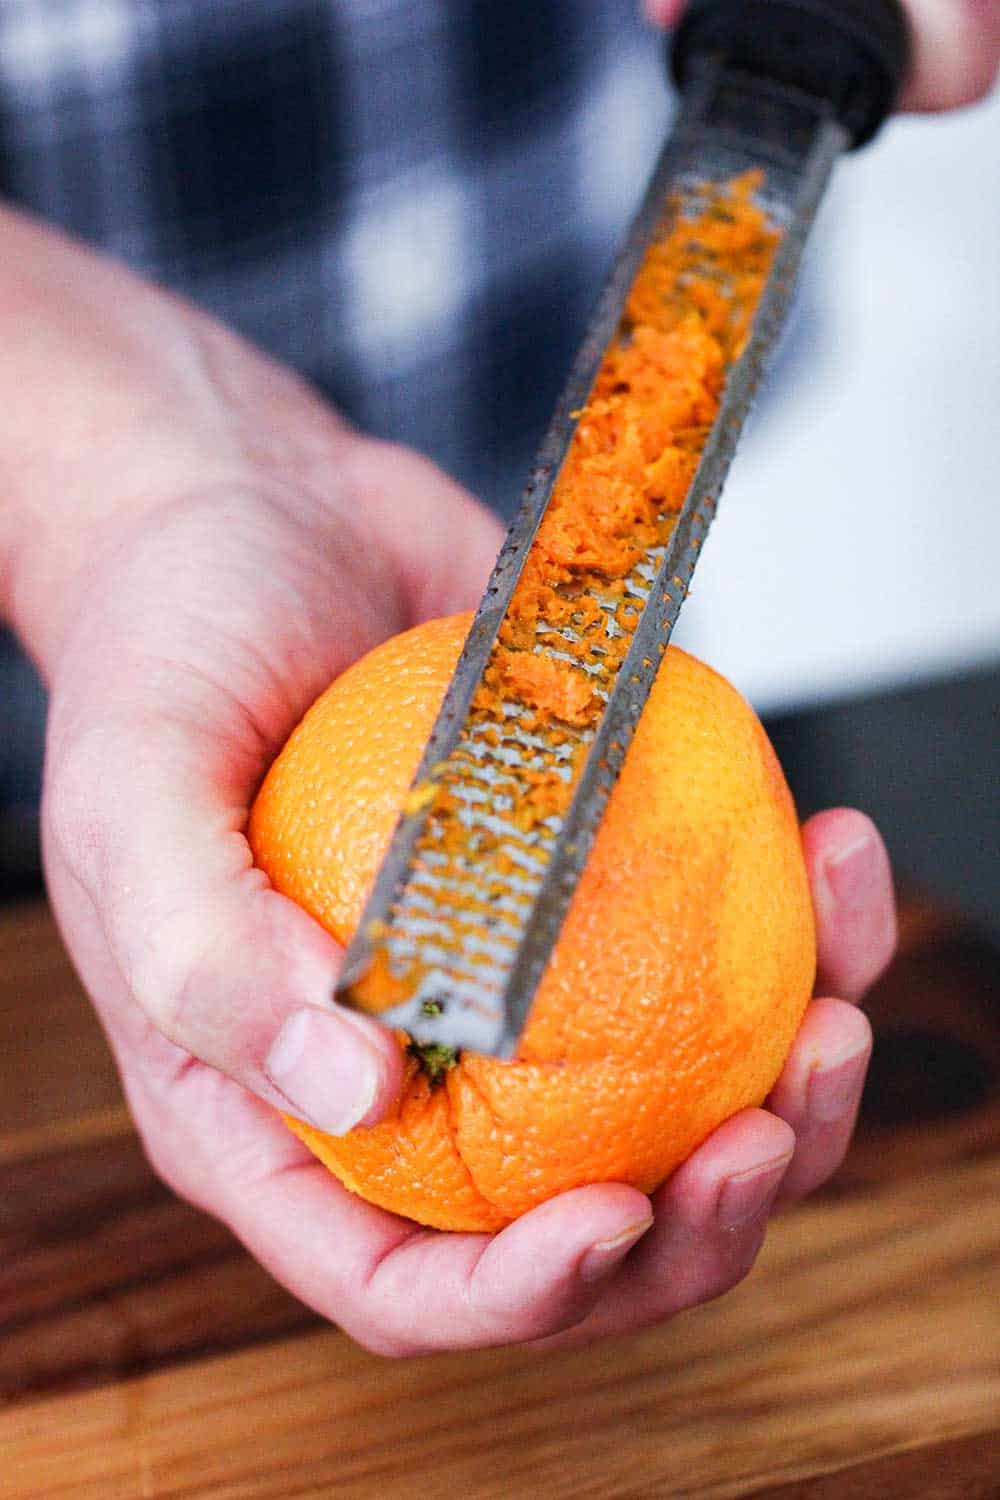 One hand holding an orange while the other hand is use a zester to zest the orange.